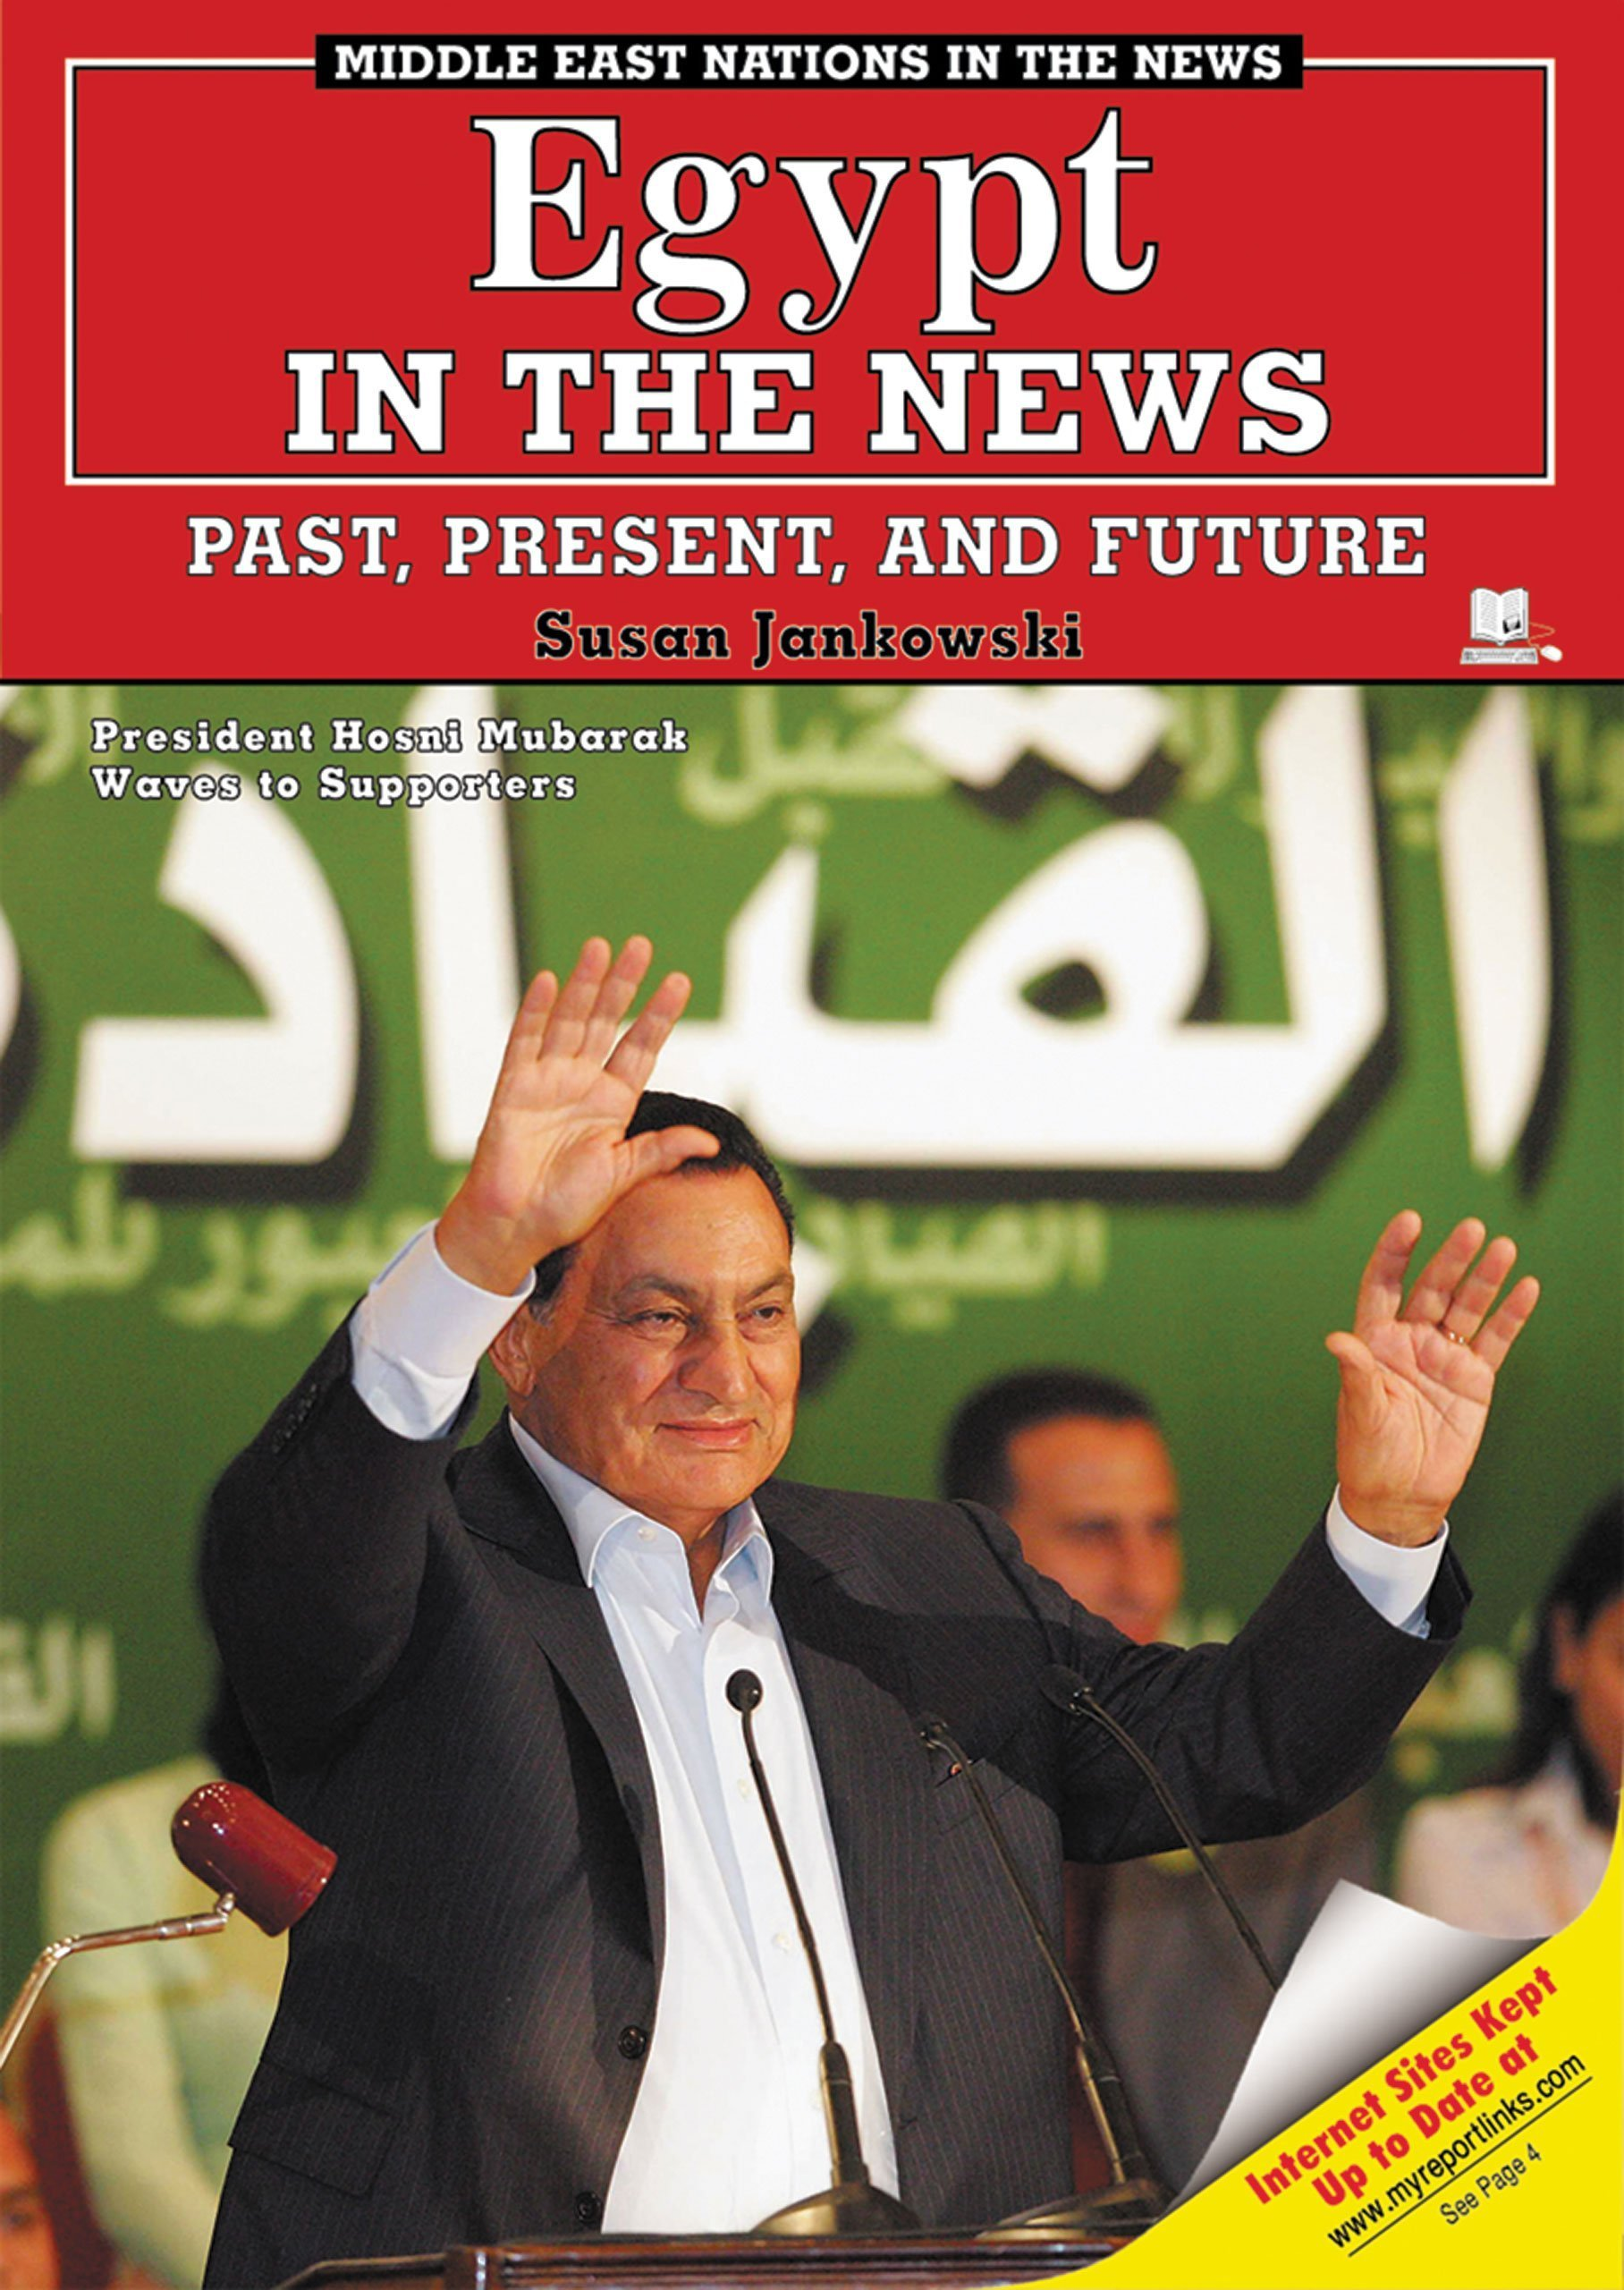 Egypt in the News: Past, Present, And Future (Middle East Nations in the News)